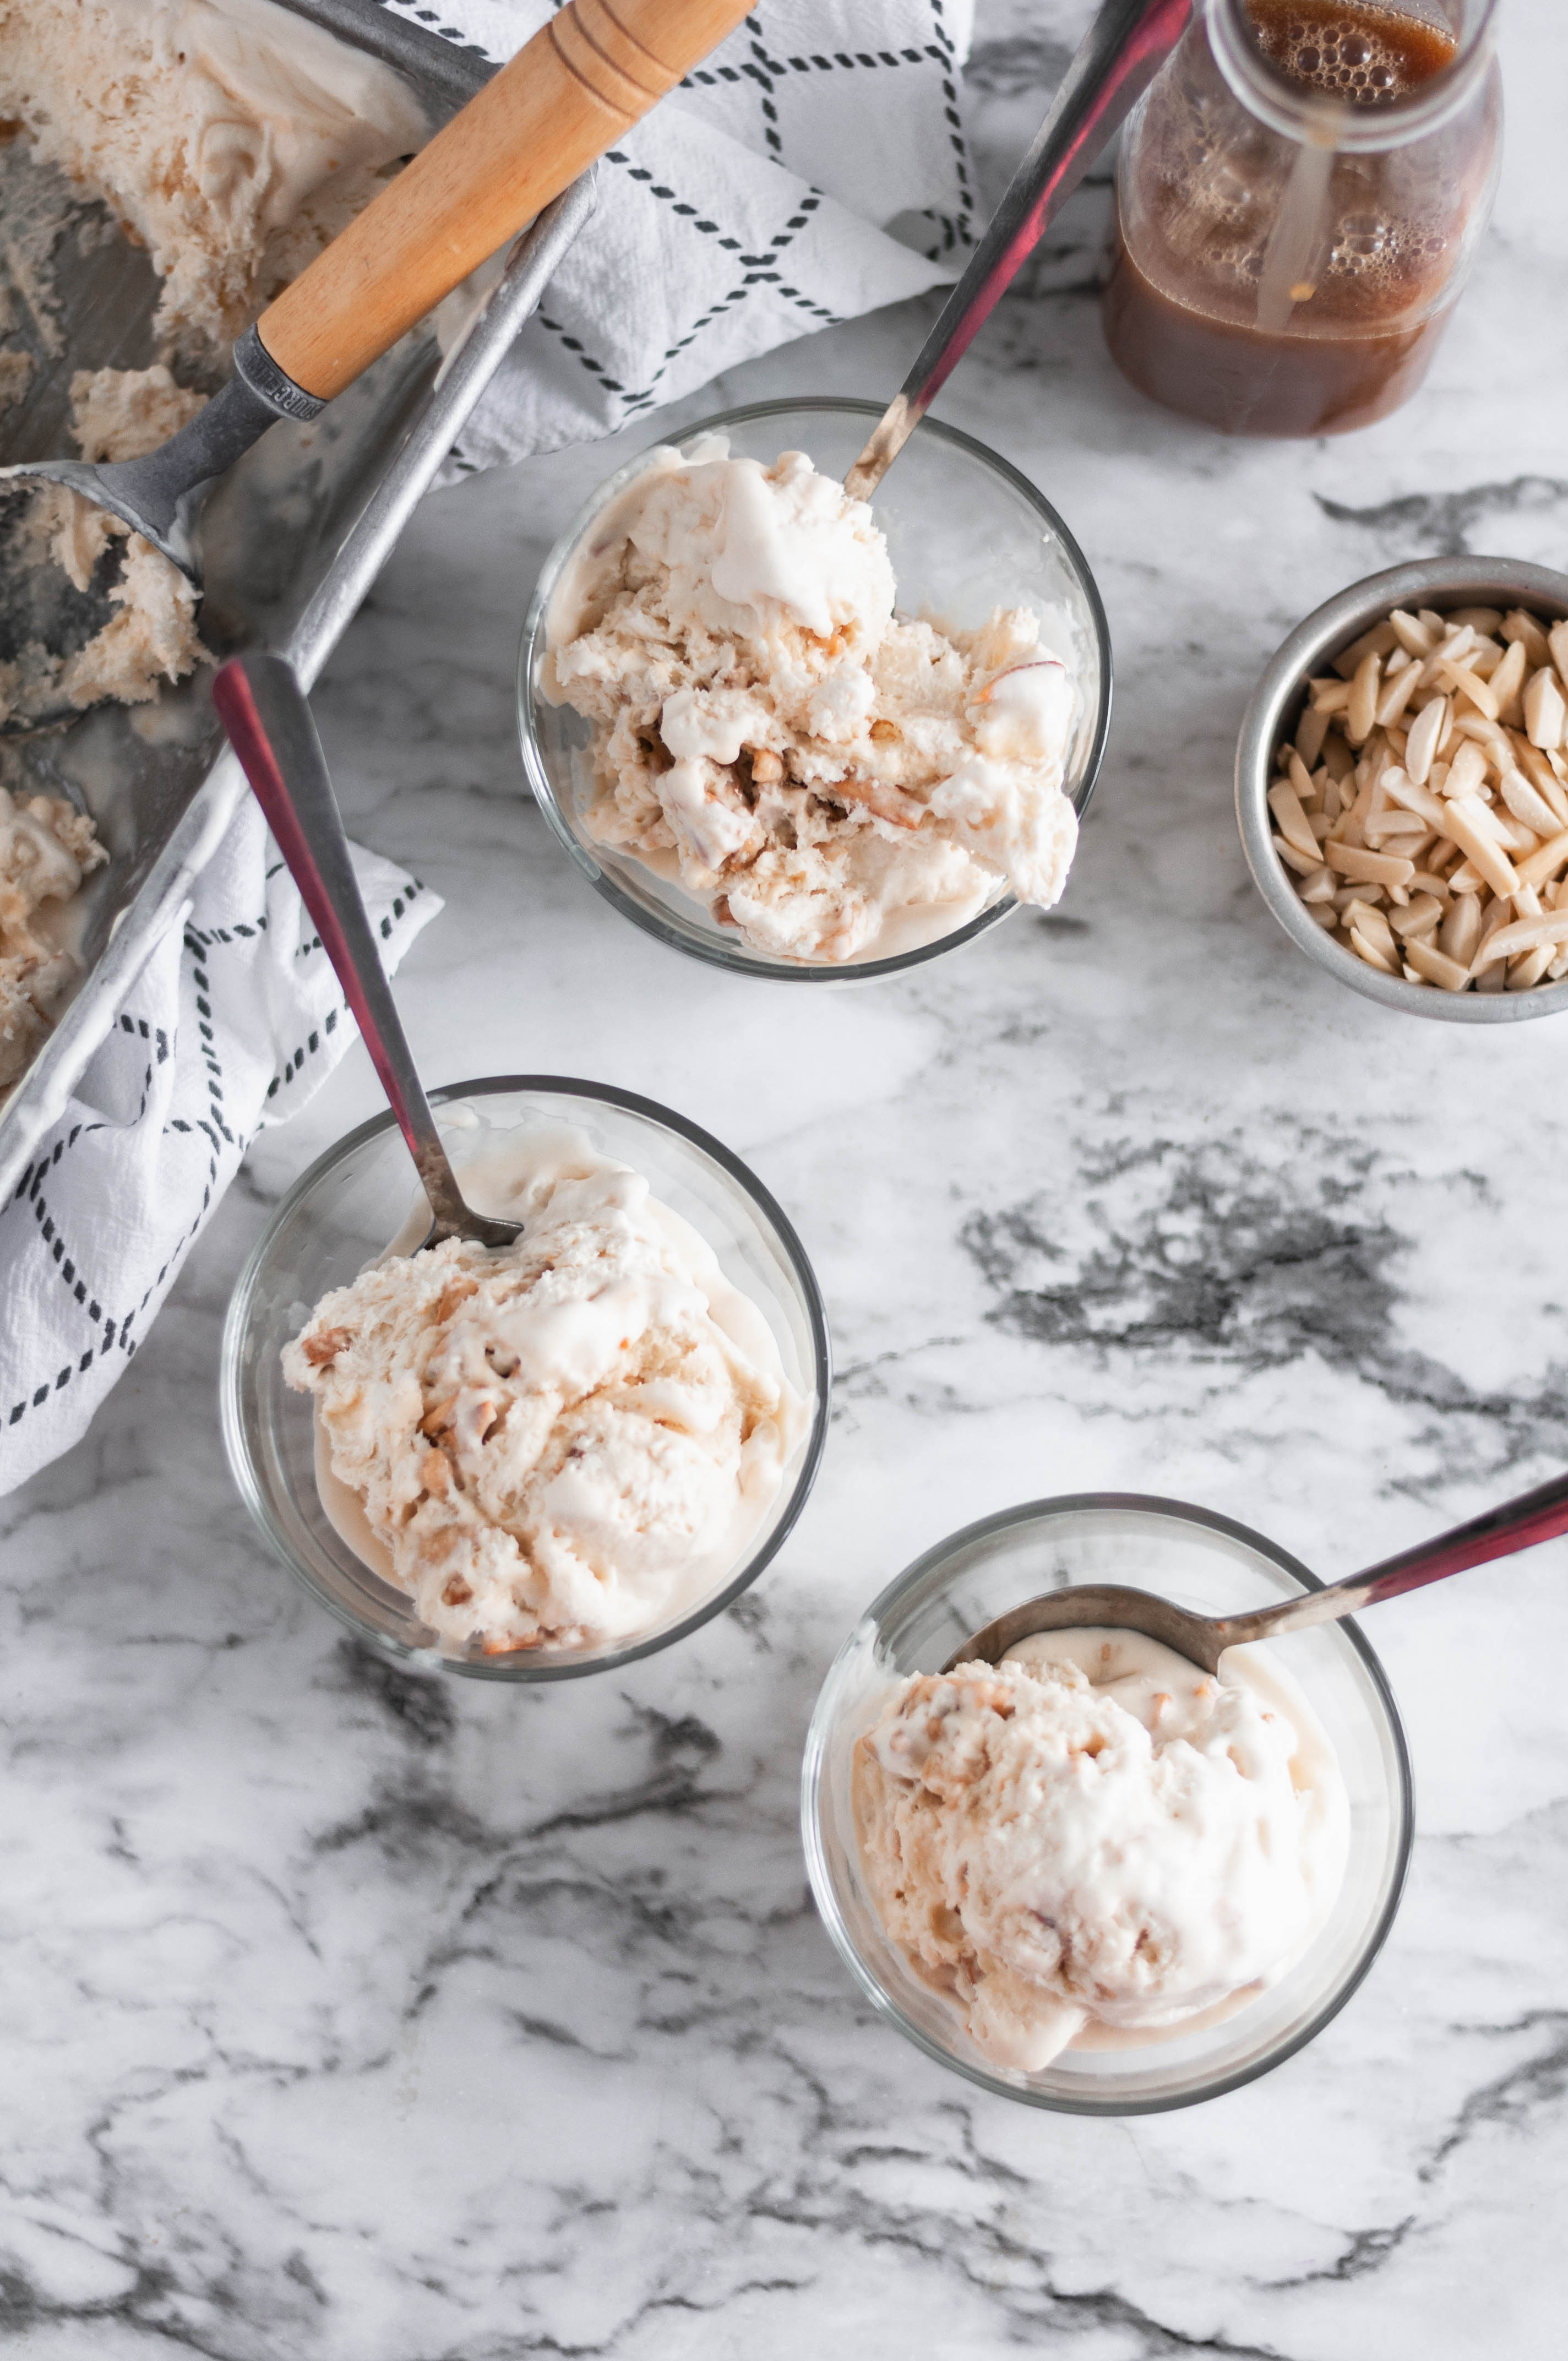 No ice cream machine needed to make this No Churn Caramel Ice Cream. It's packed with rich caramel and candied almonds for crunch.